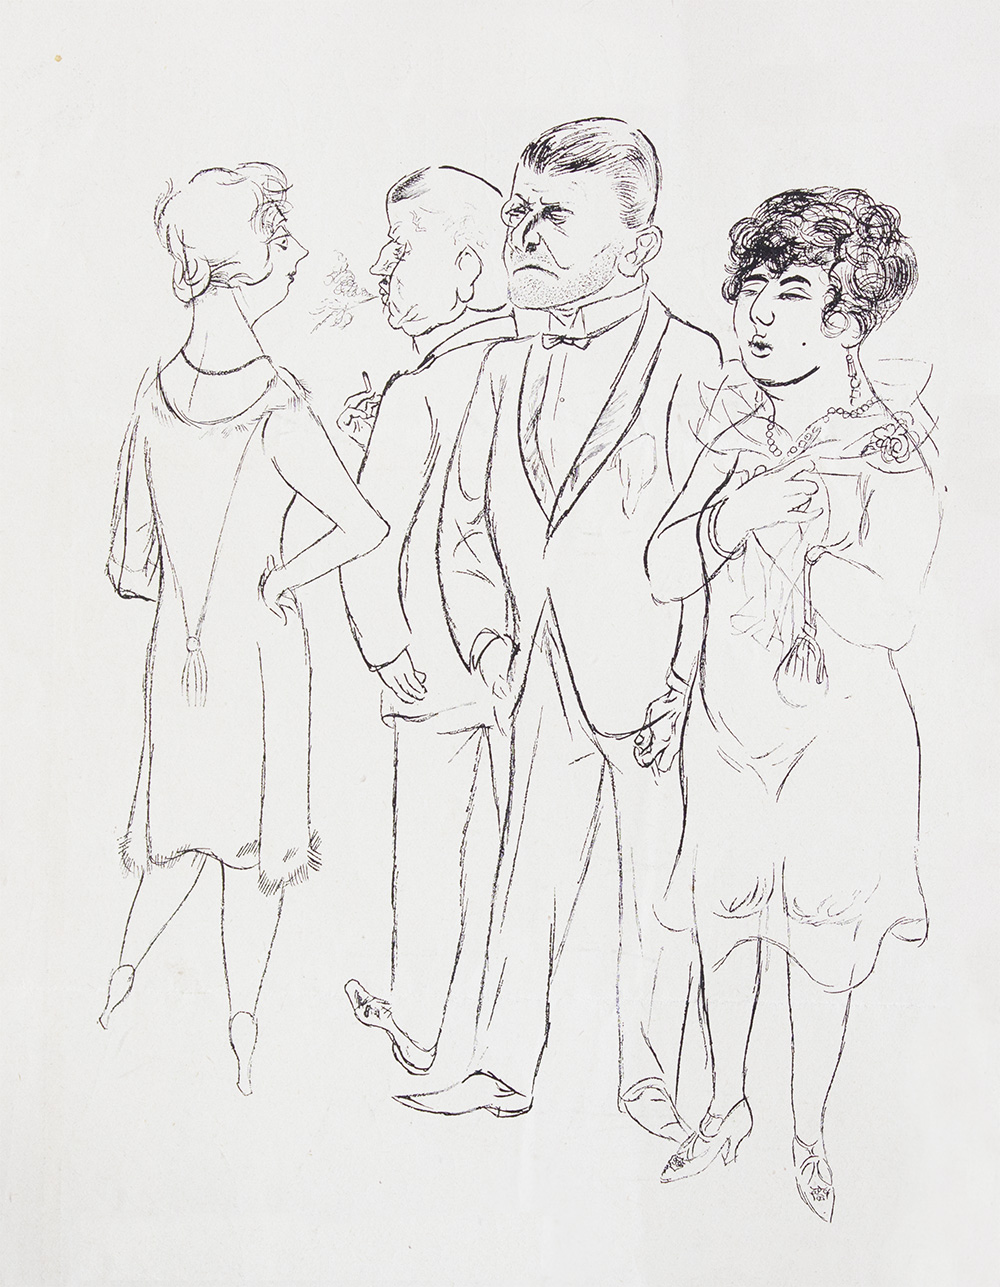 George Grosz - In Der Pause (In The Break) - Lithograph on paper - 1926